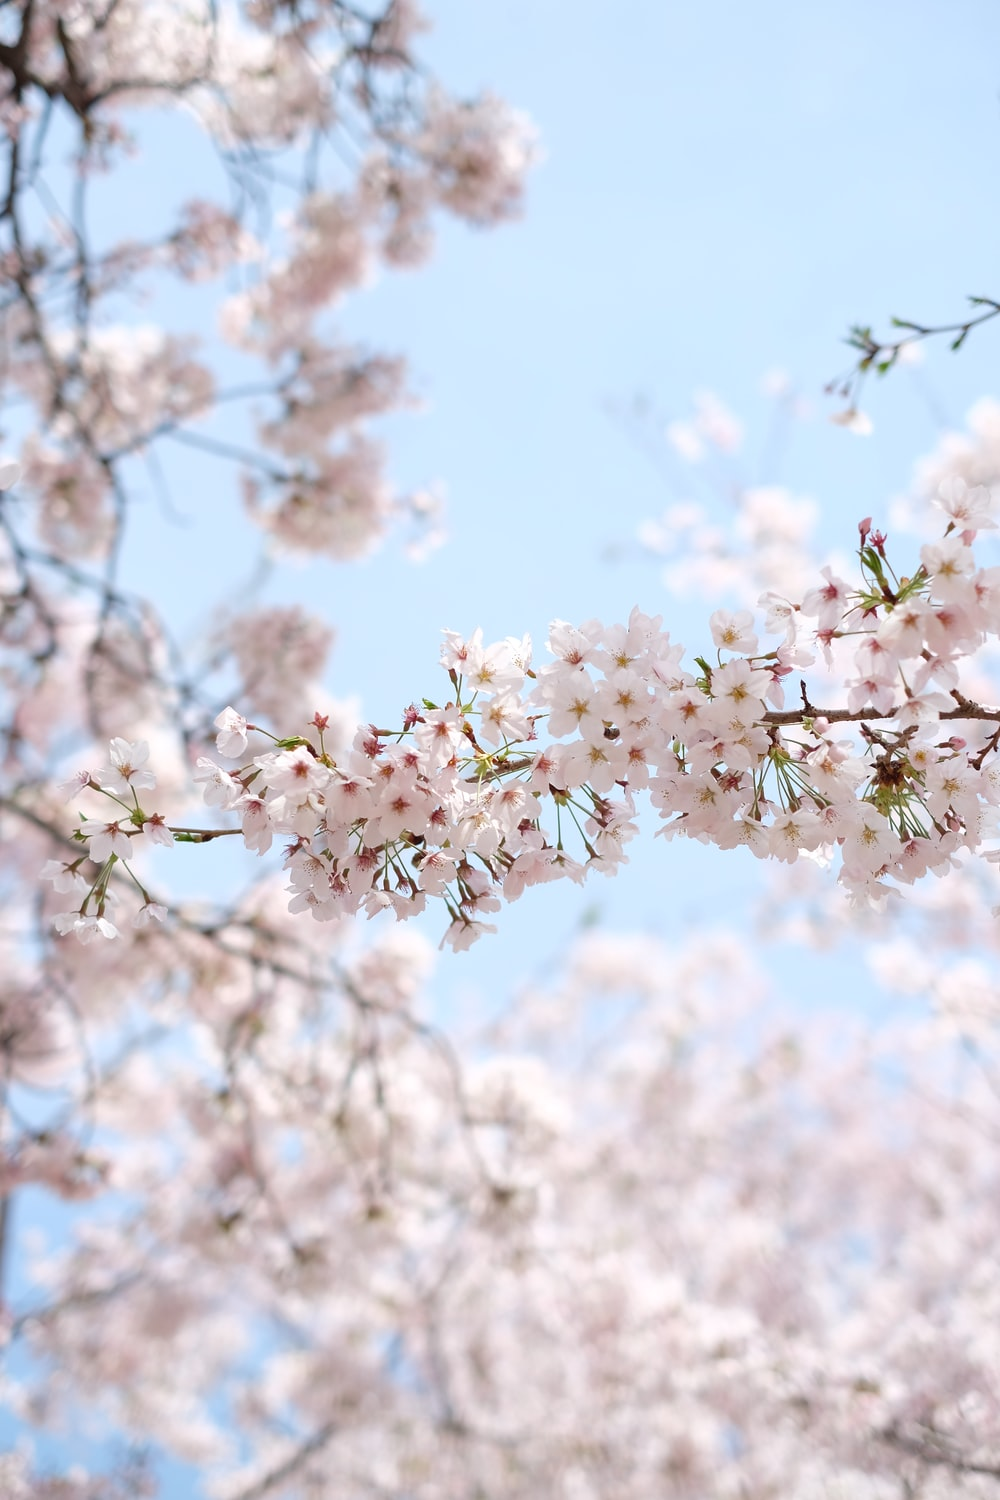 white cherry blossom under clear blue sky during daytime